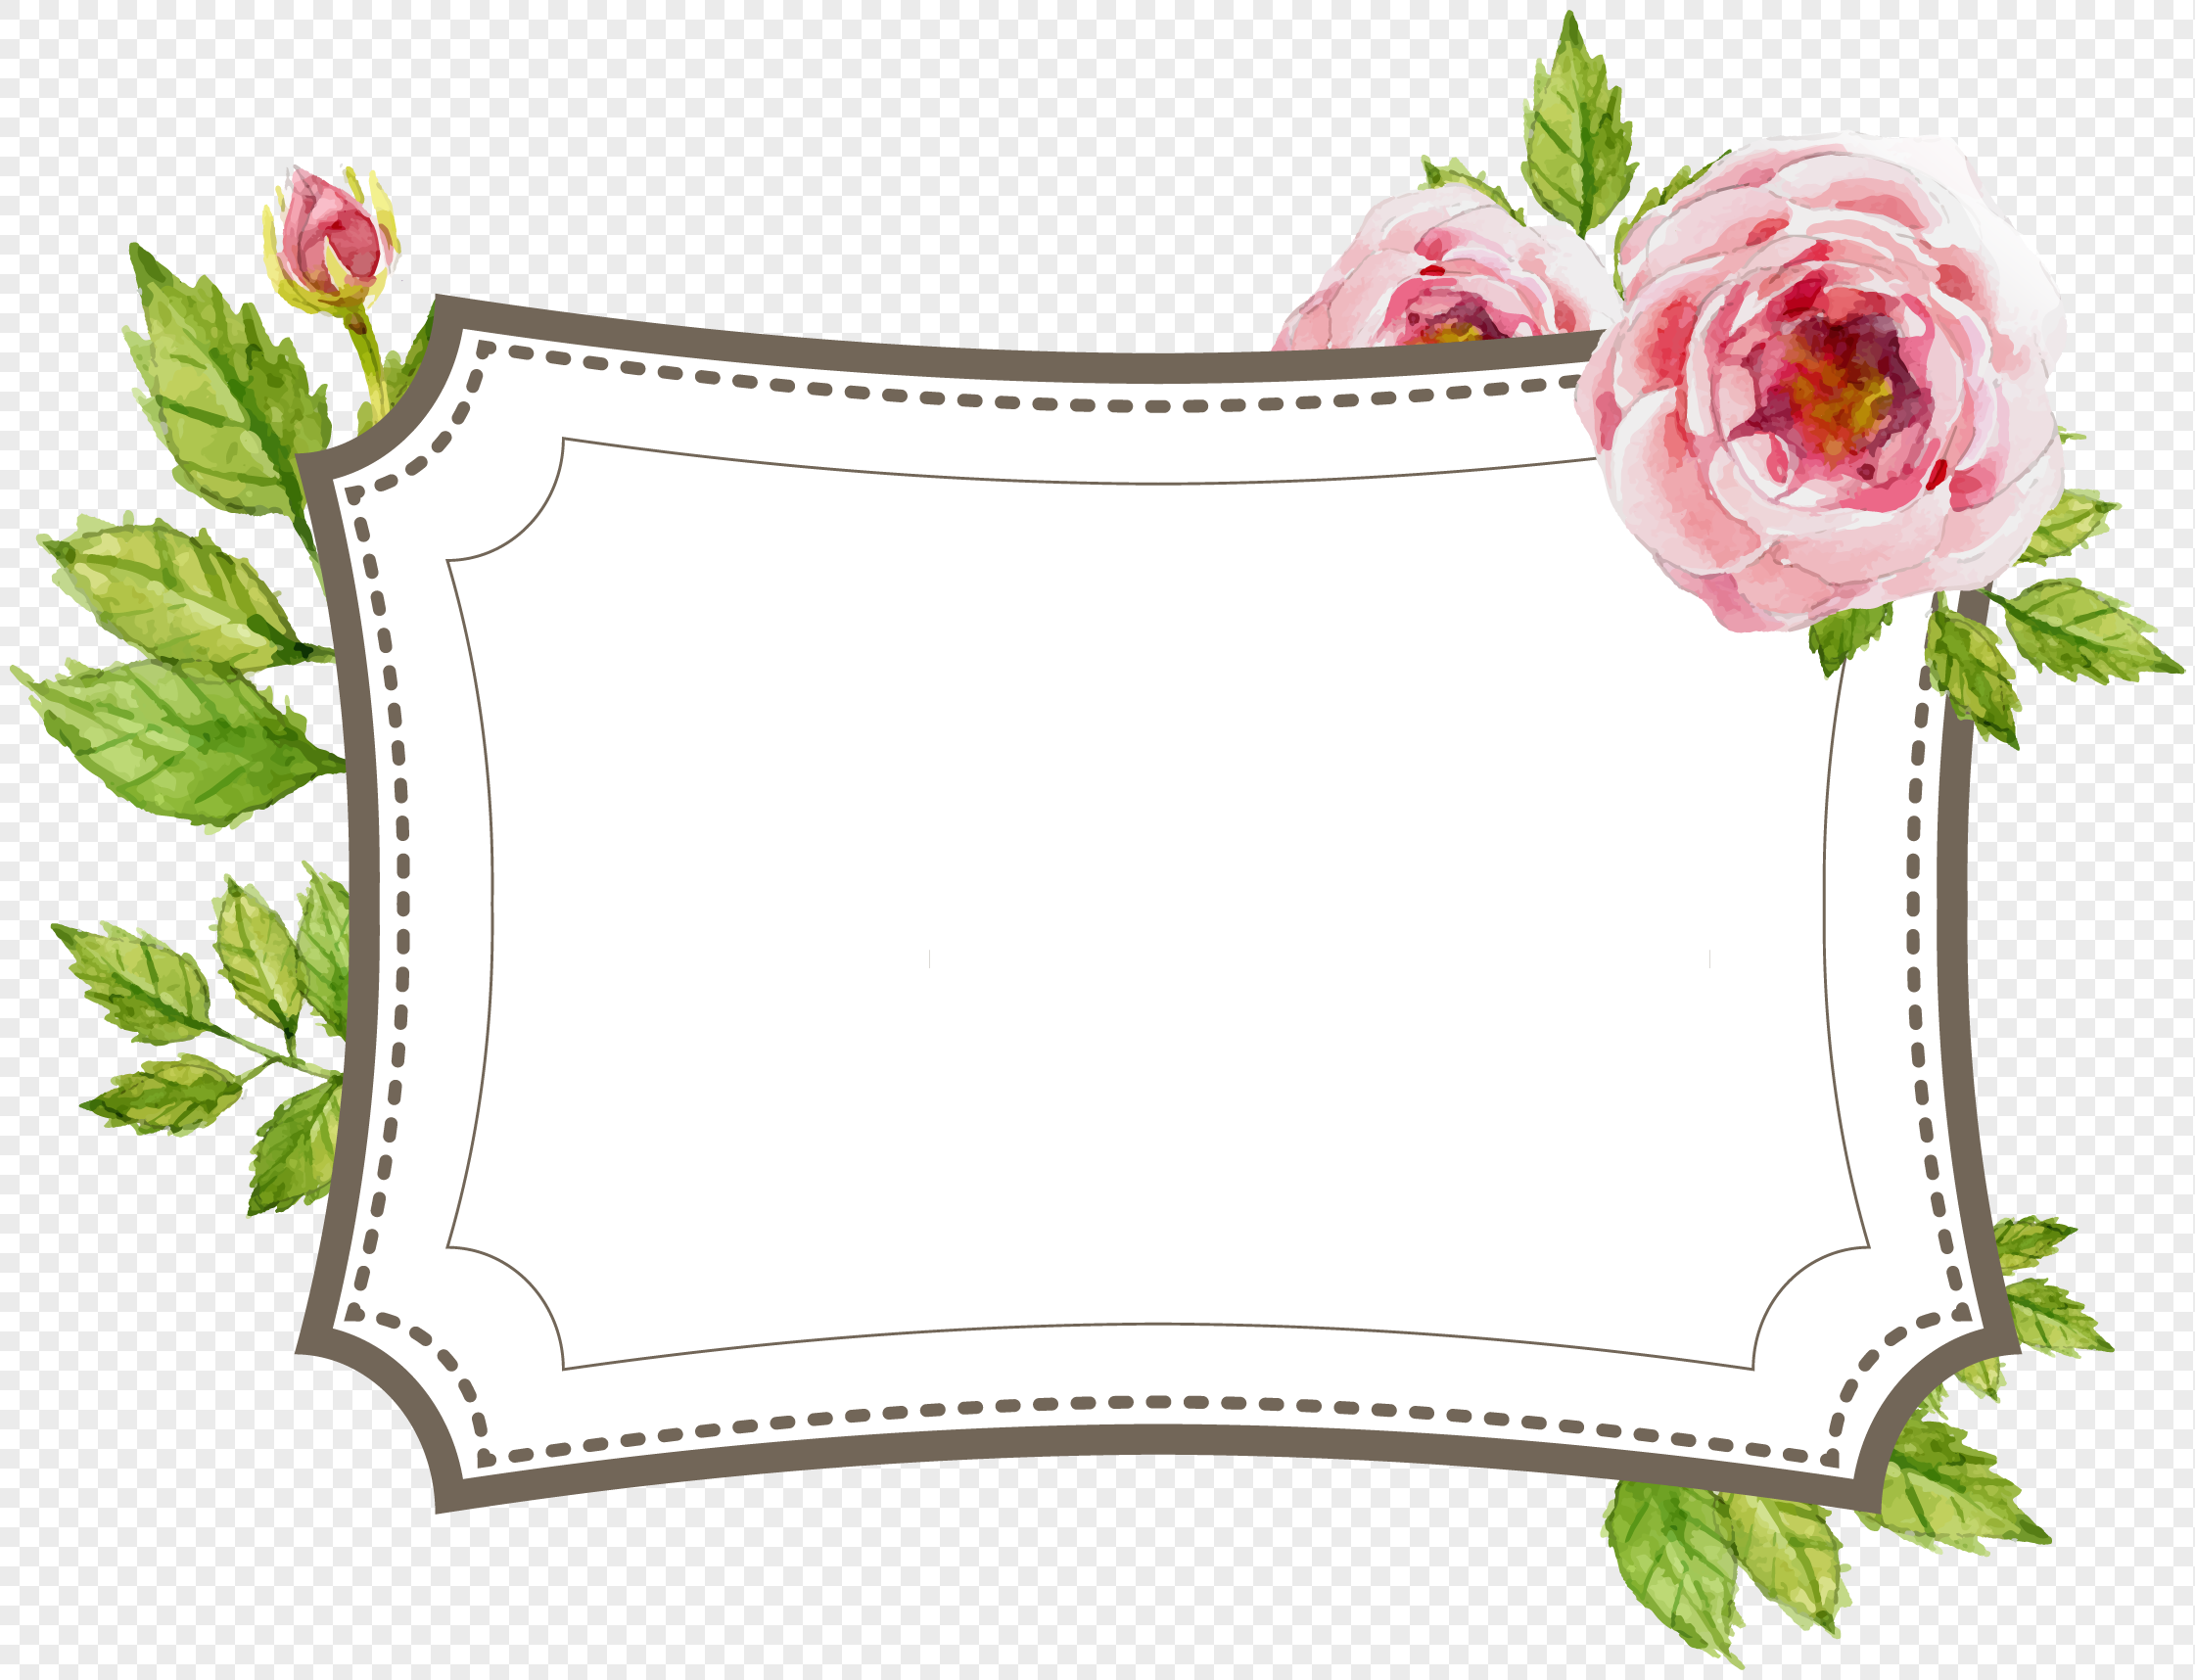 hand painted flower border labels png image picture free download